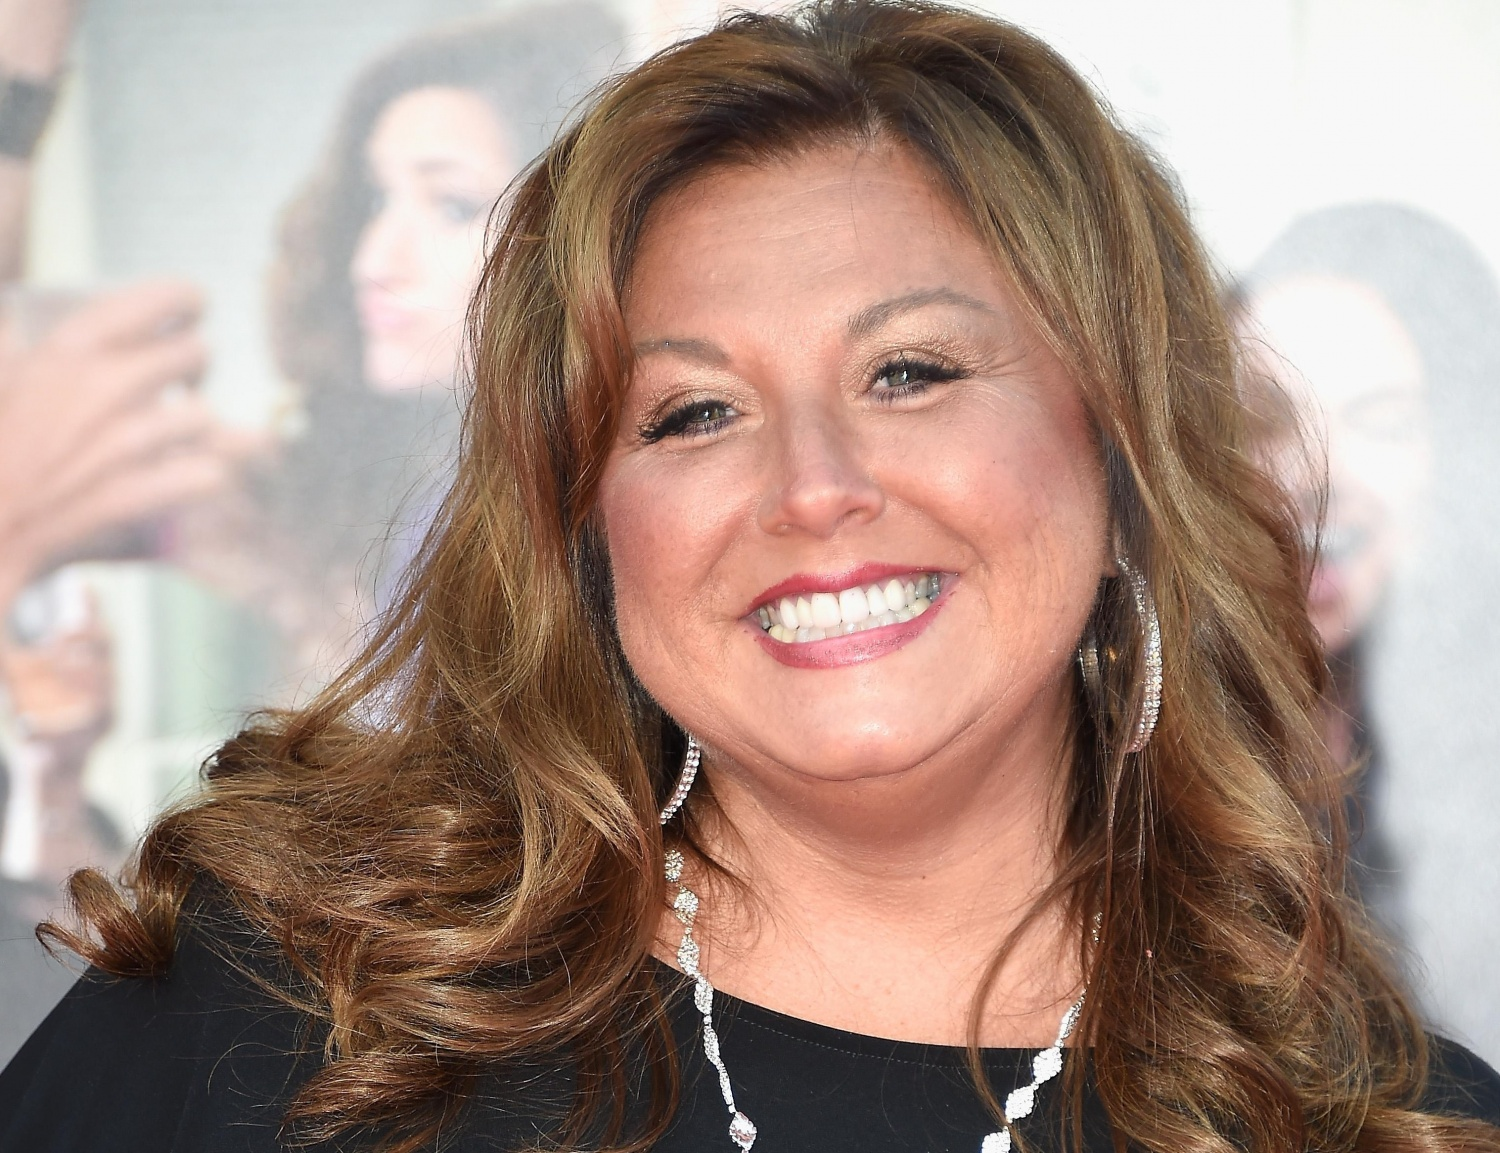 Abby Lee Miller reportedly diagnosed with non-Hodgkin's lymphoma after emergency surgery